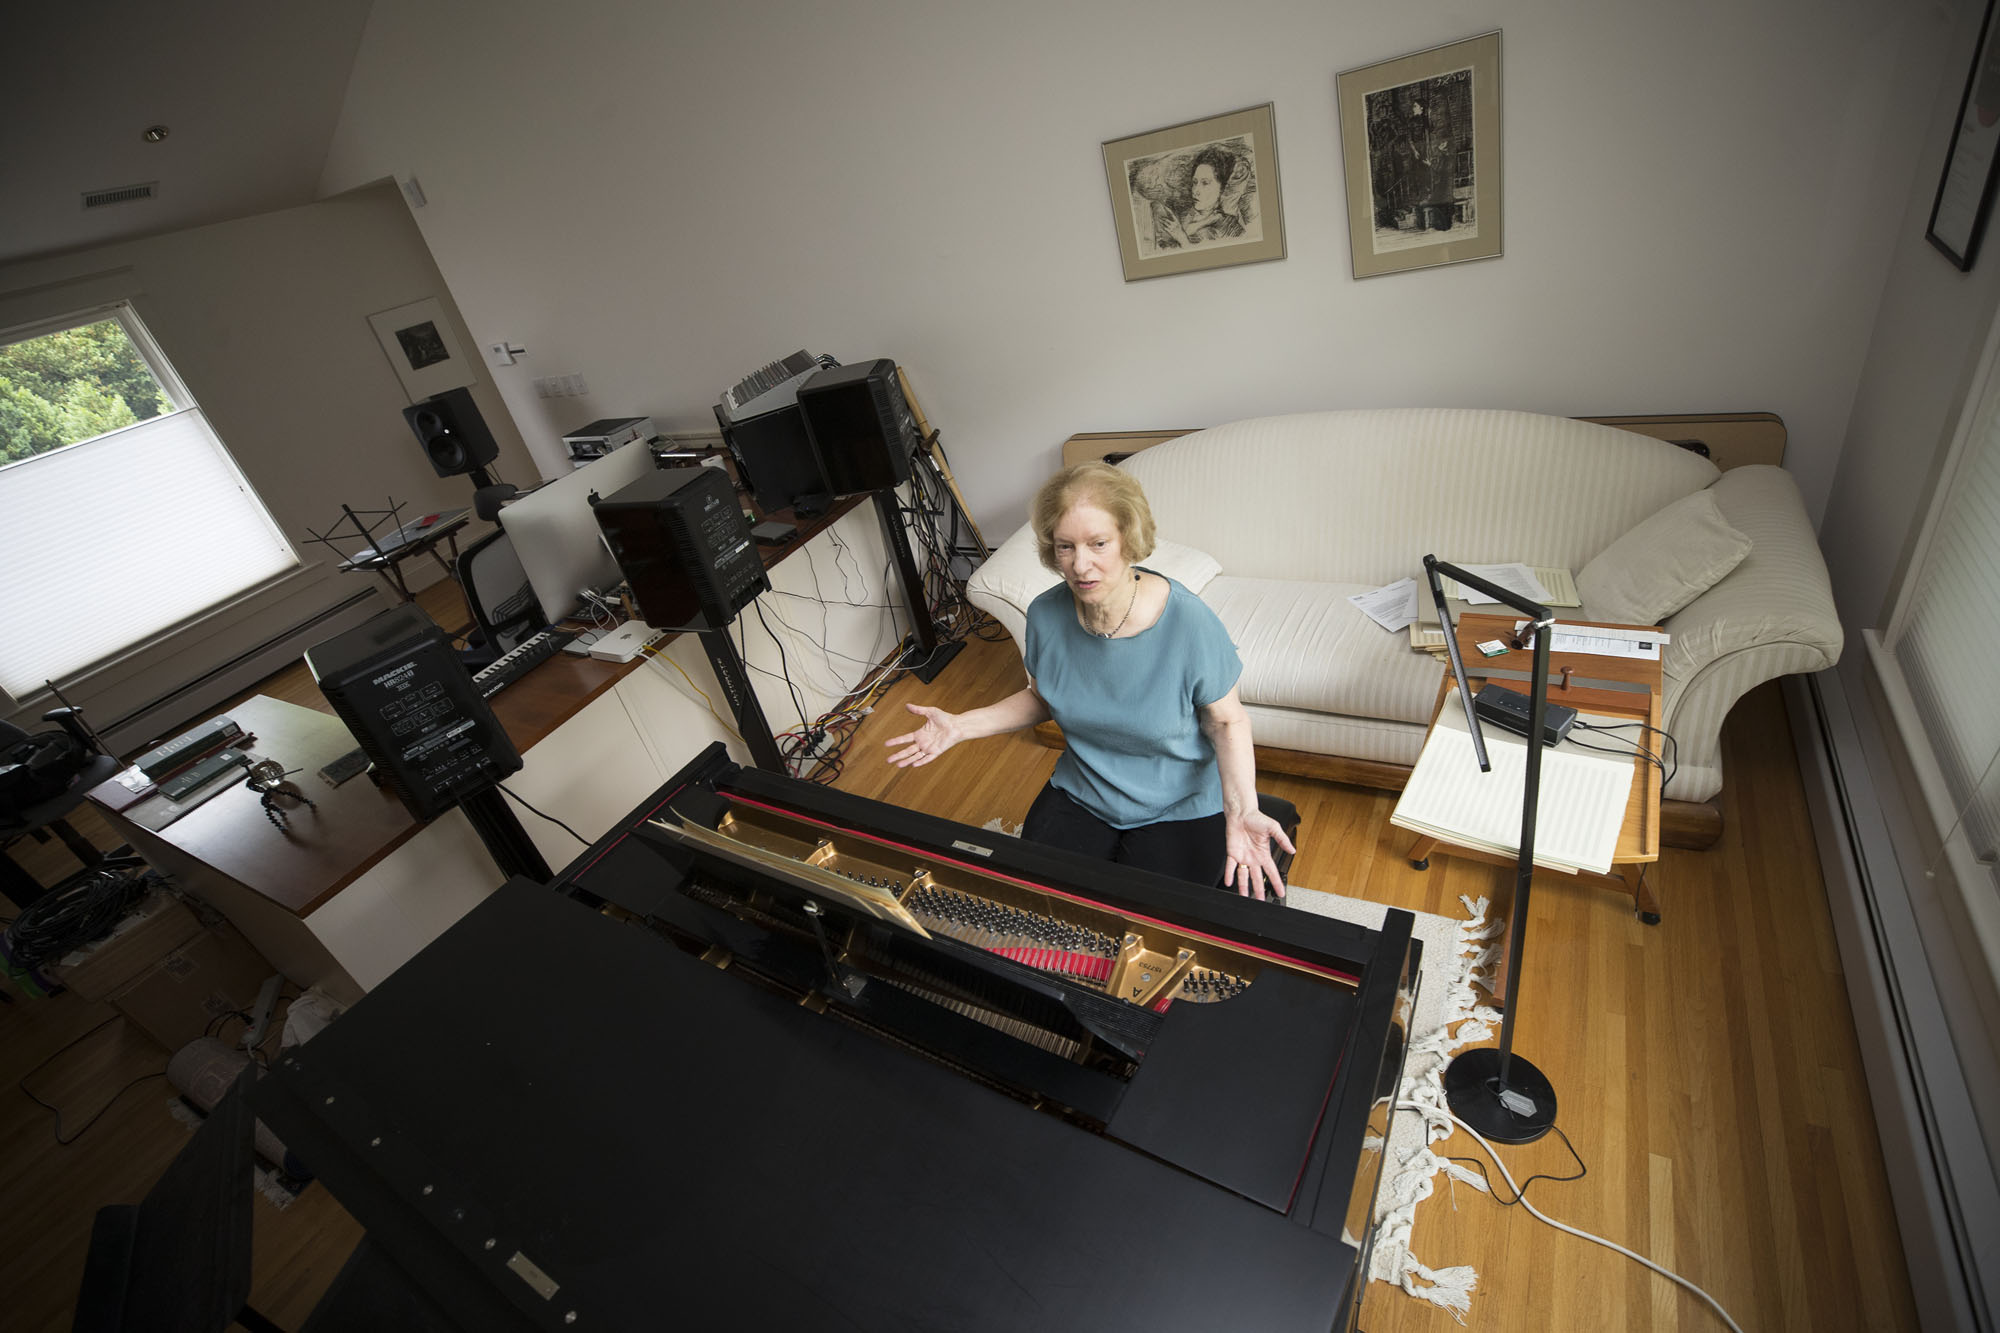 Though she retired from the McIntire Department of Music at the end of the academic year, Shatin plans to remain involved in the department and continue her work as a composer. She is already hard at work on several commissions.